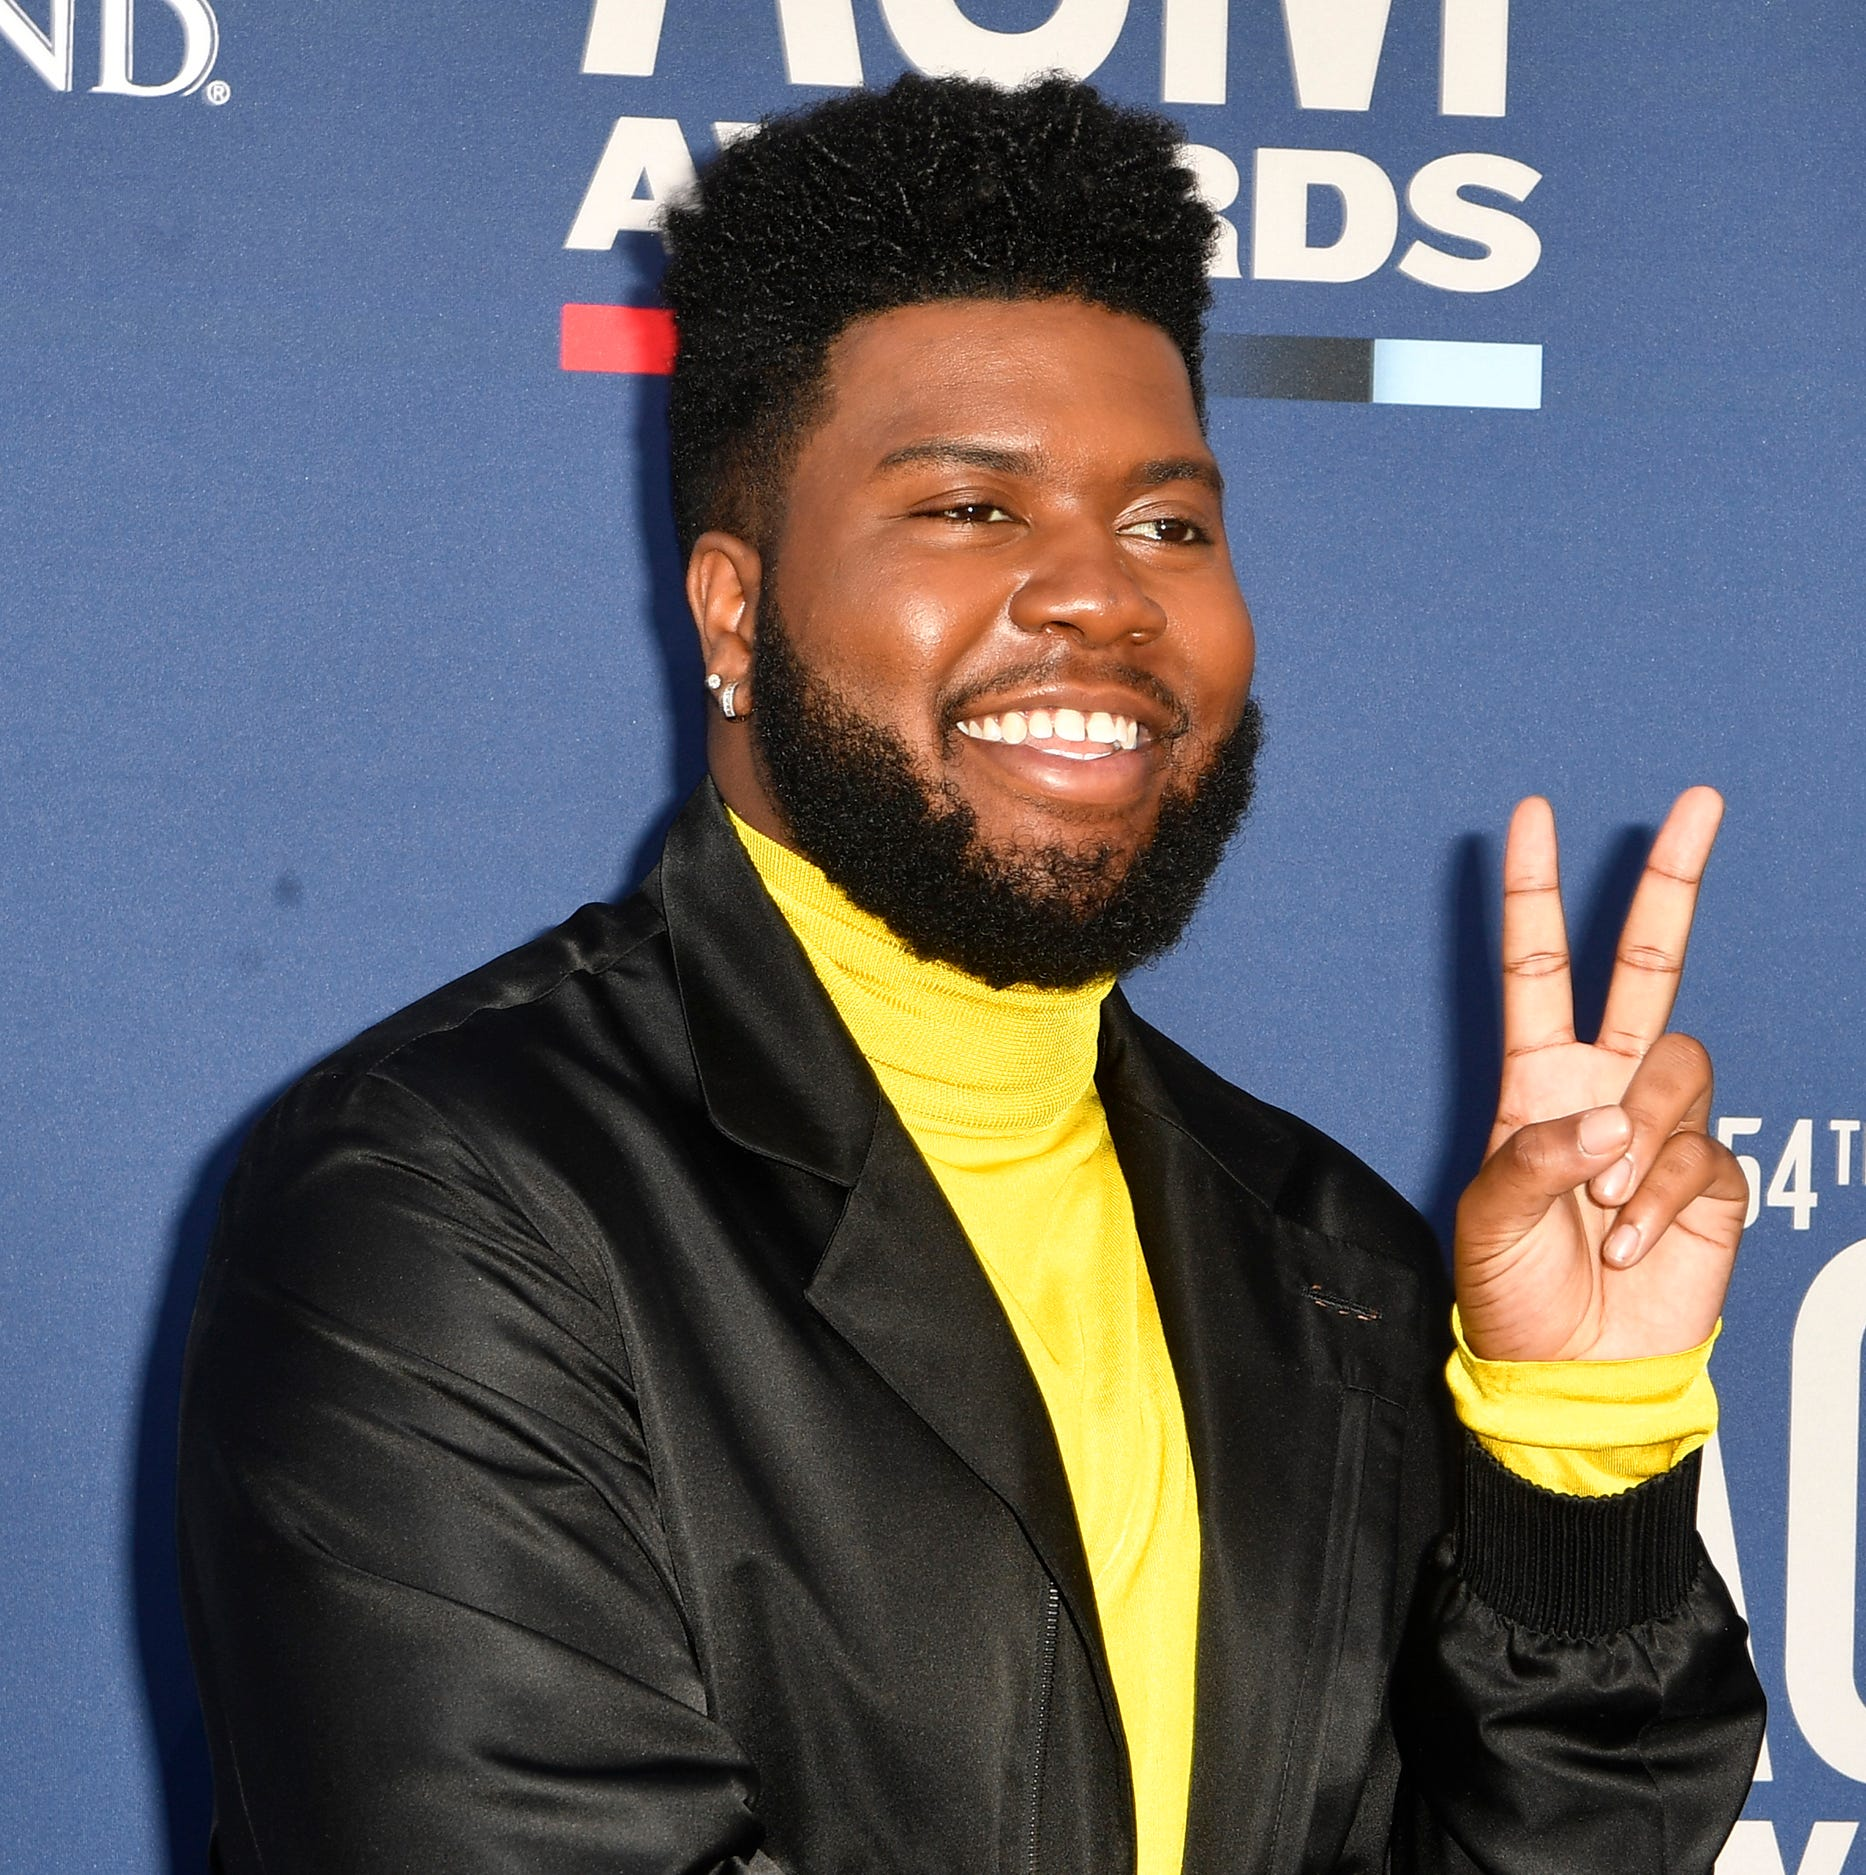 El Paso R&B singer Khalid goes country with Kane Brown at CMAs 2019